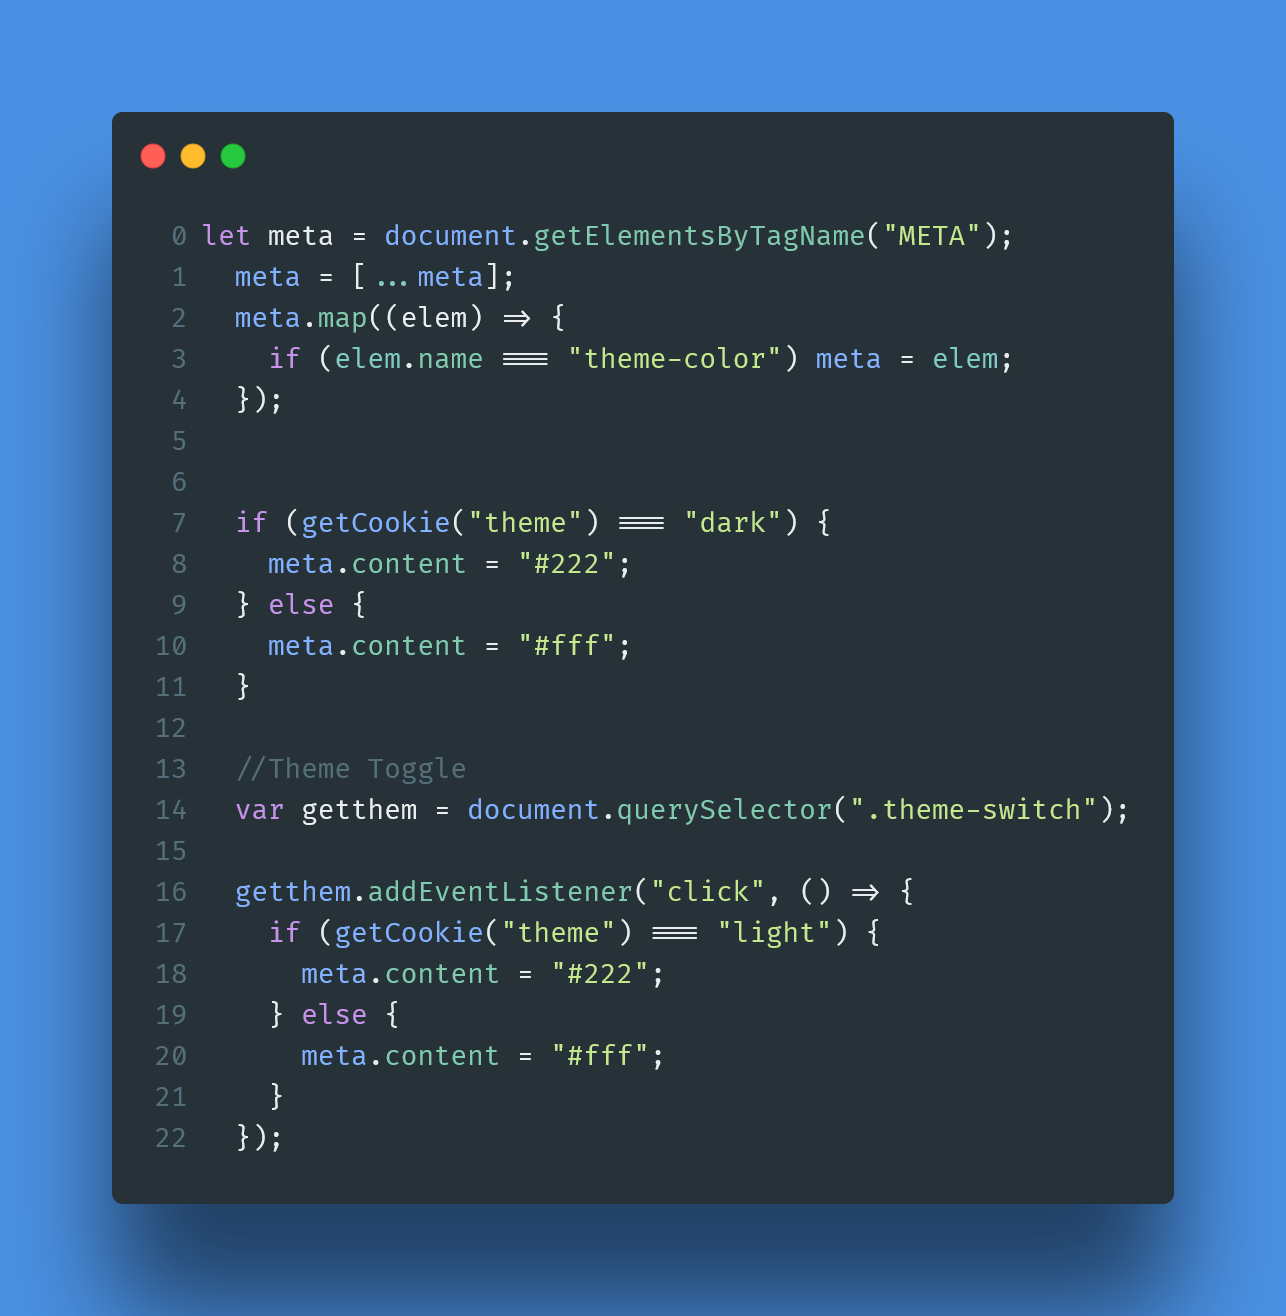 Change your theme color using js